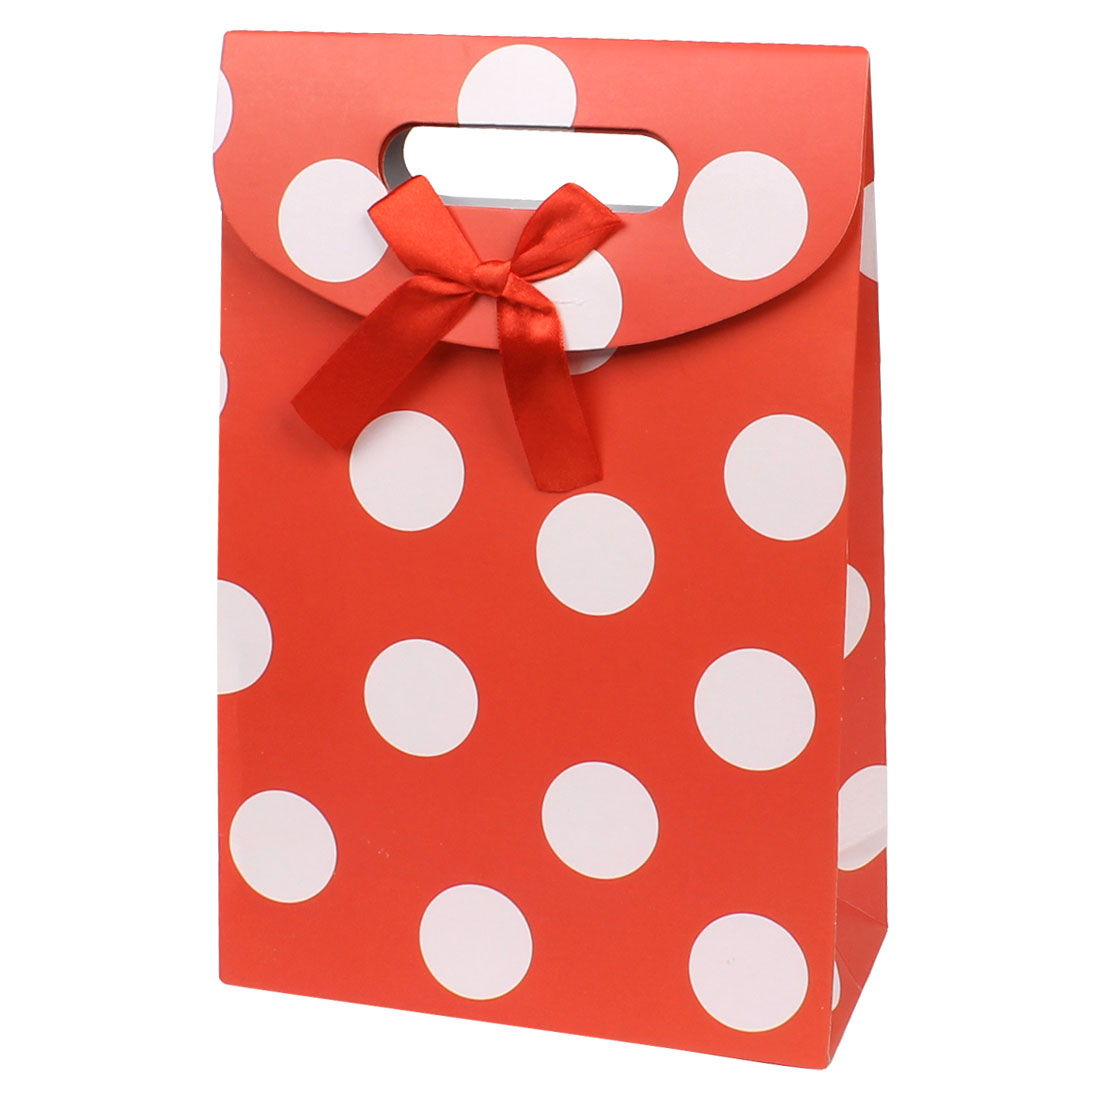 Bow Tie White Circle Pattern Gift Paper Foldable Bag Holder Red